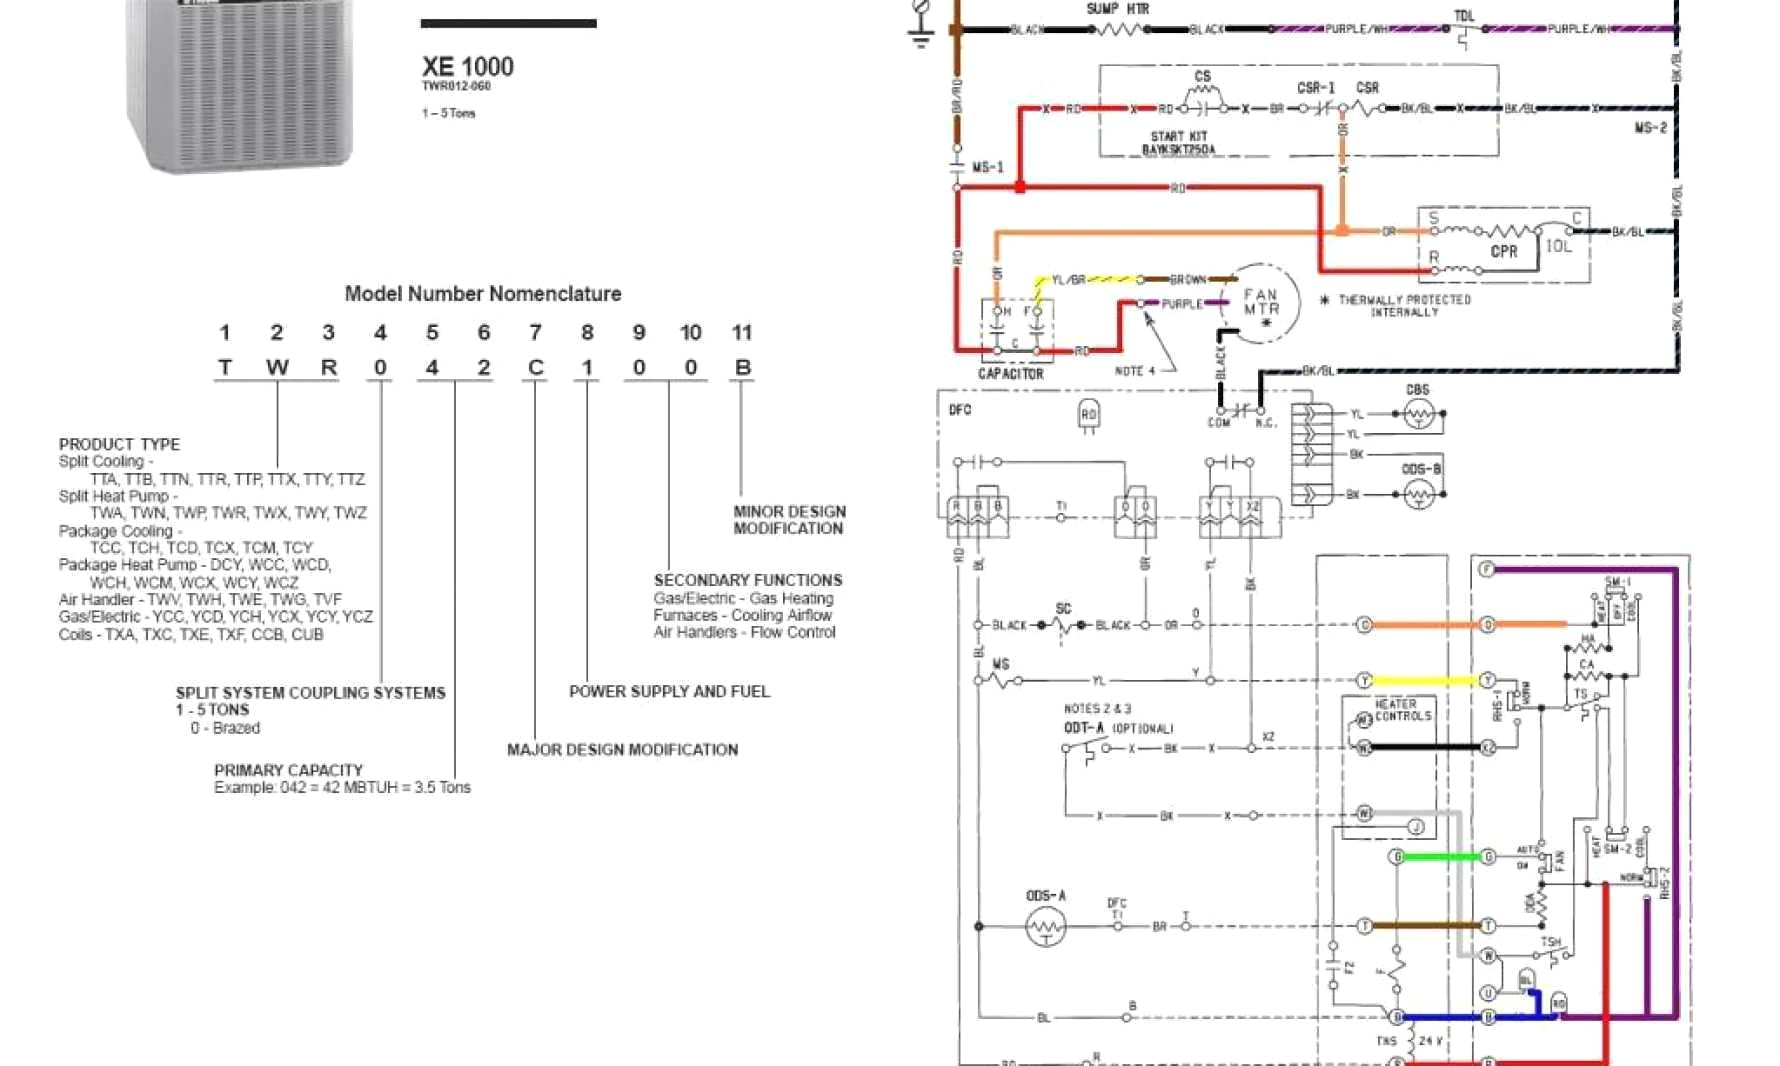 trane xv95 thermostat wiring diagram Collection-trane thermostat wiring diagram collection wiring diagram sample brown wire thermostat trane thermostat wiring diagram collection 13-b